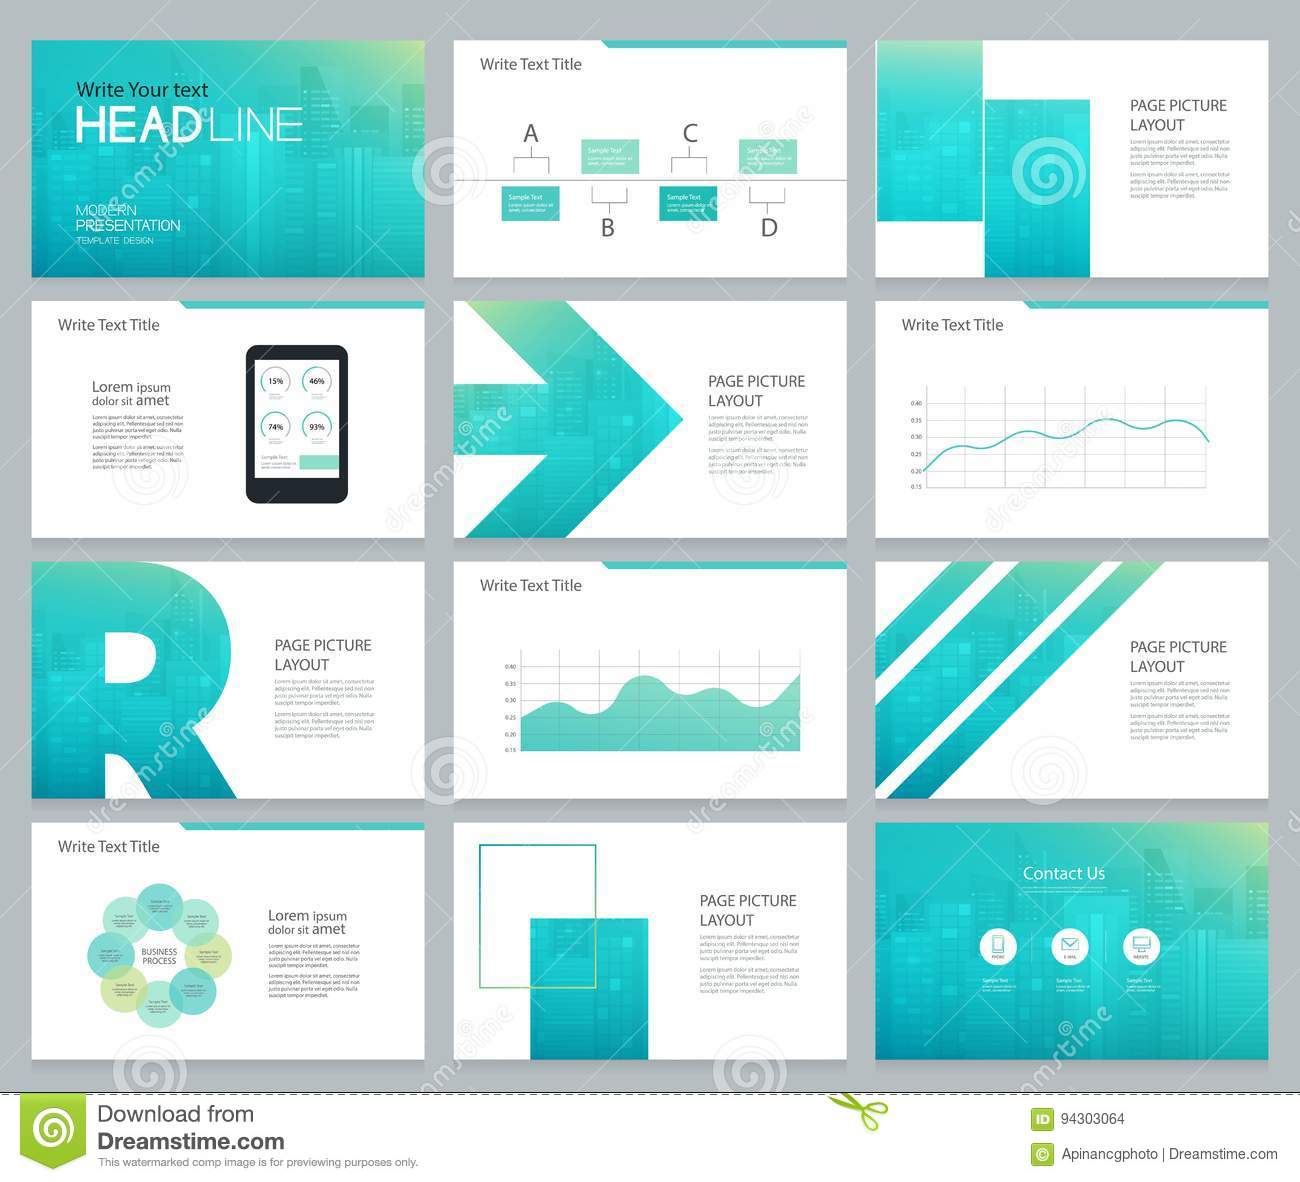 Page Layout Design For Business Presentation And Brochure Stock ...